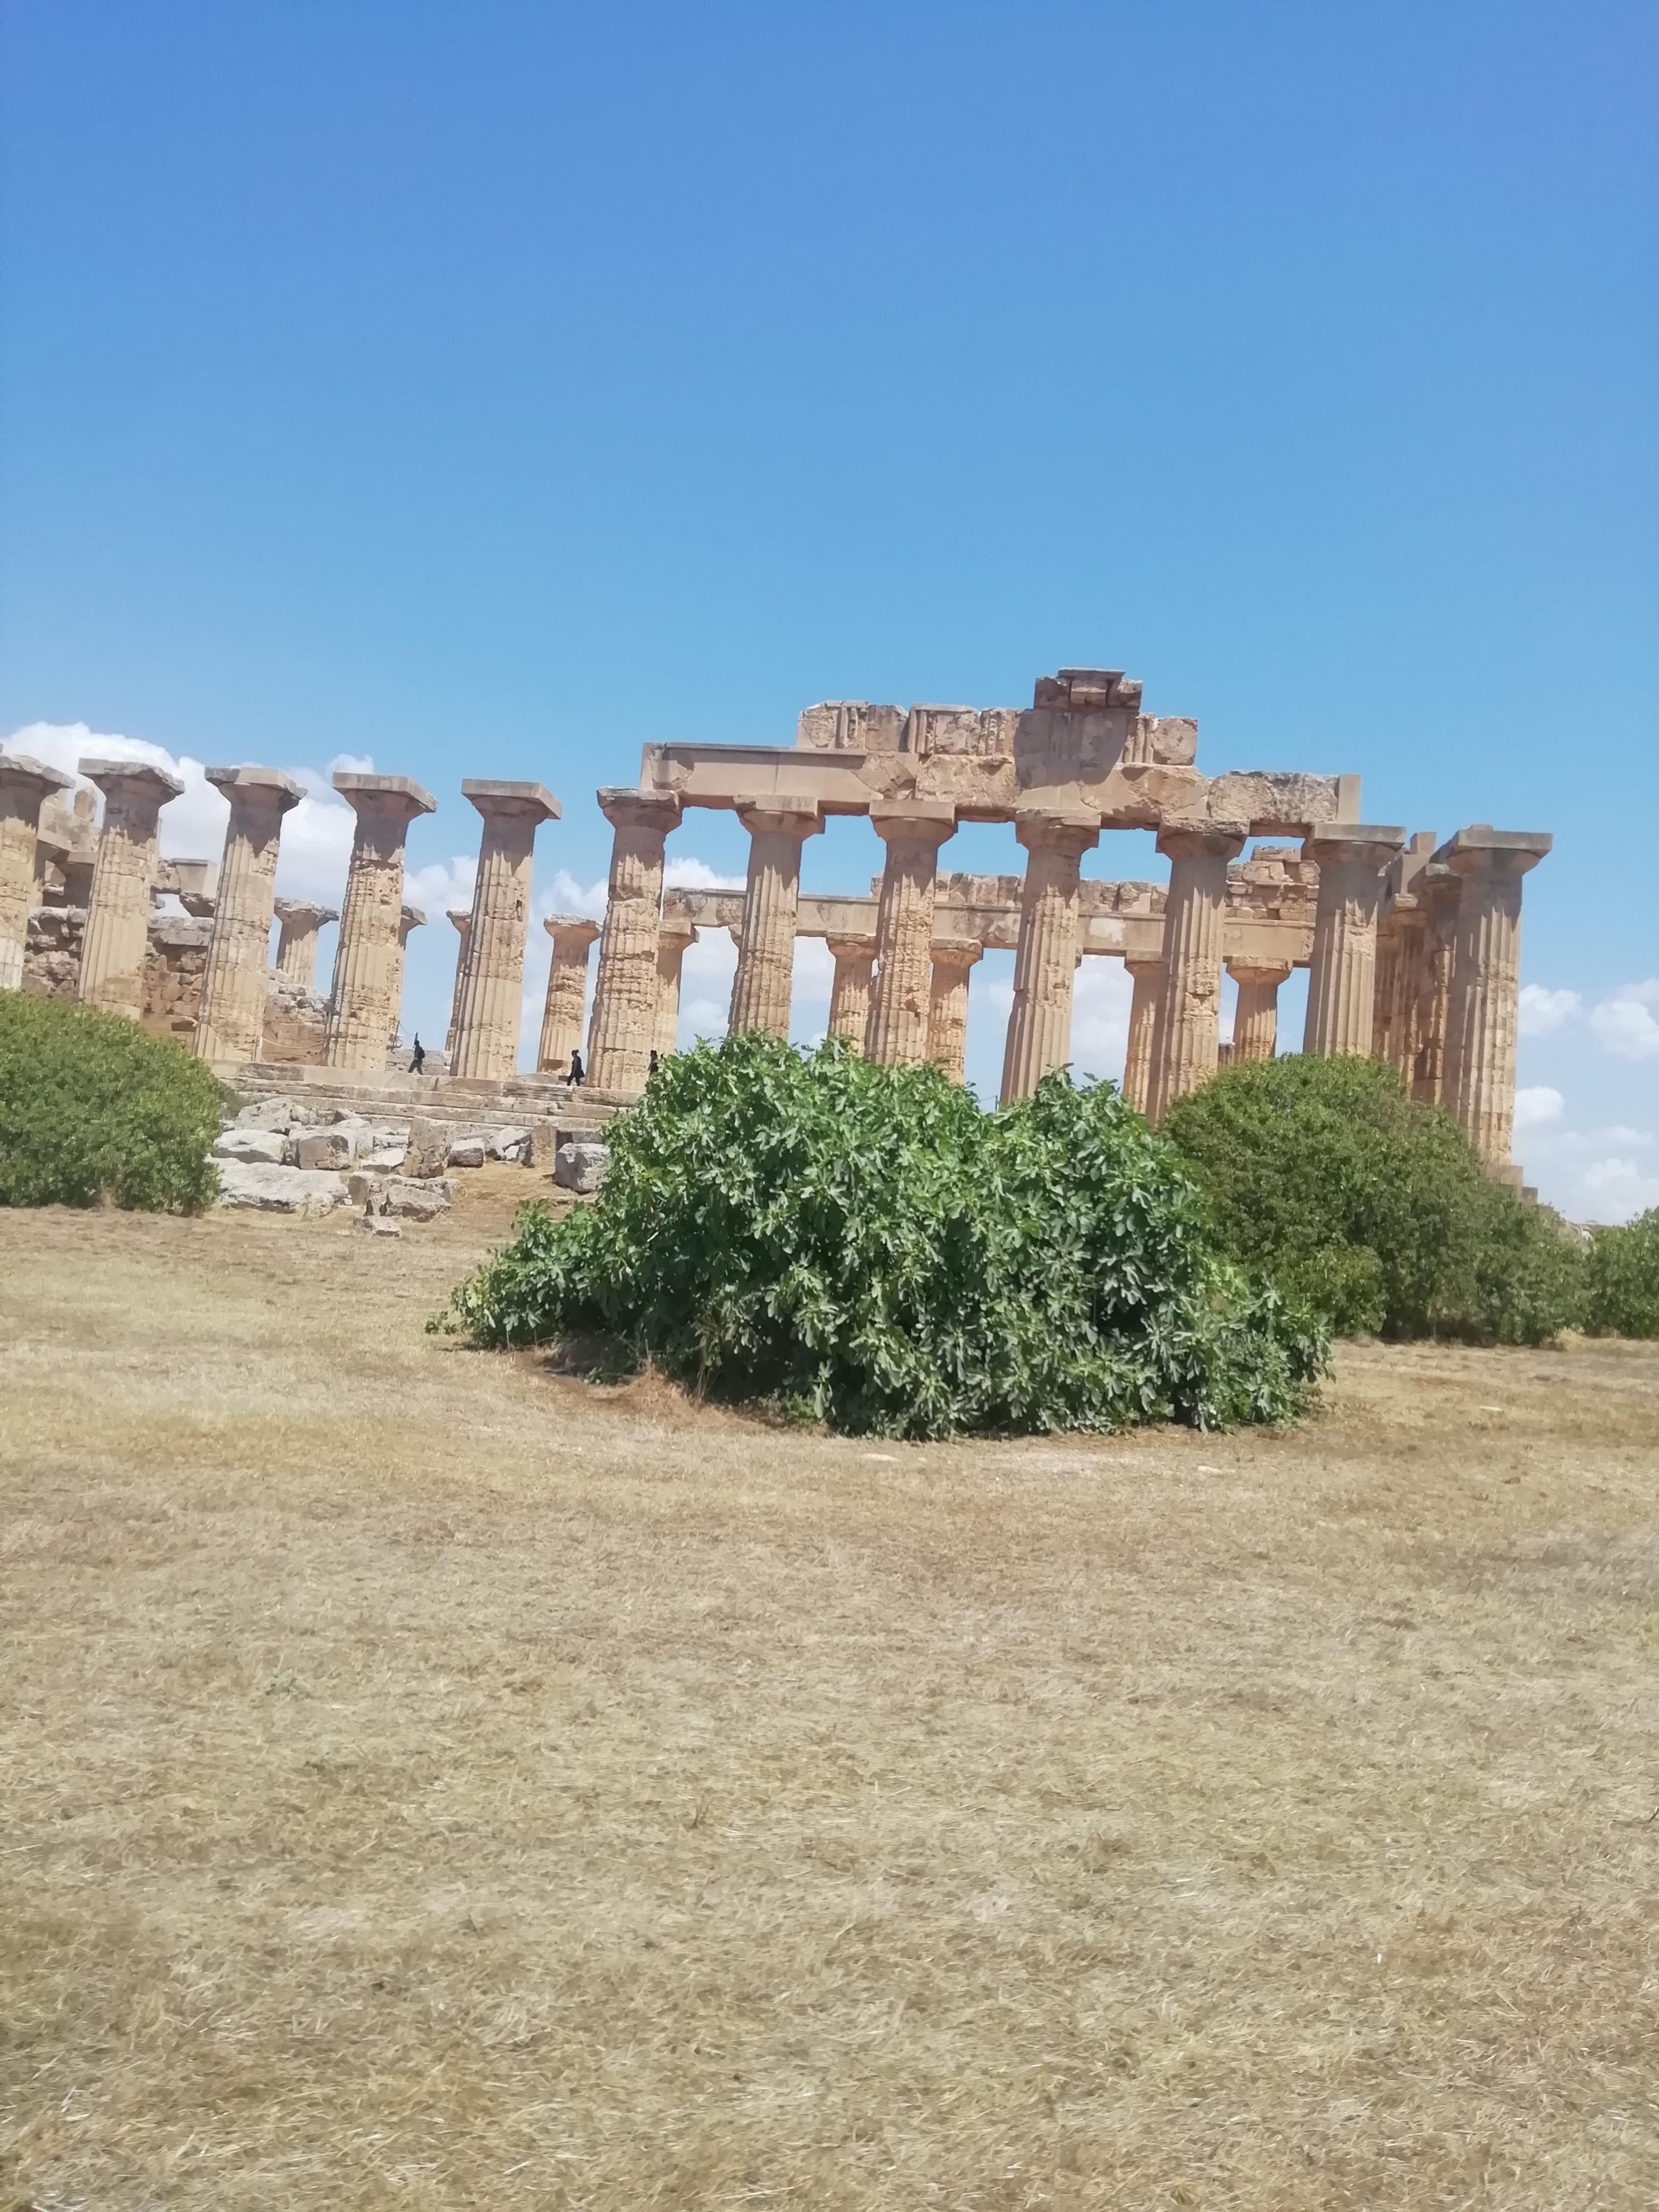 One of the temples of Selinunte, an ancient greek town in Sicily